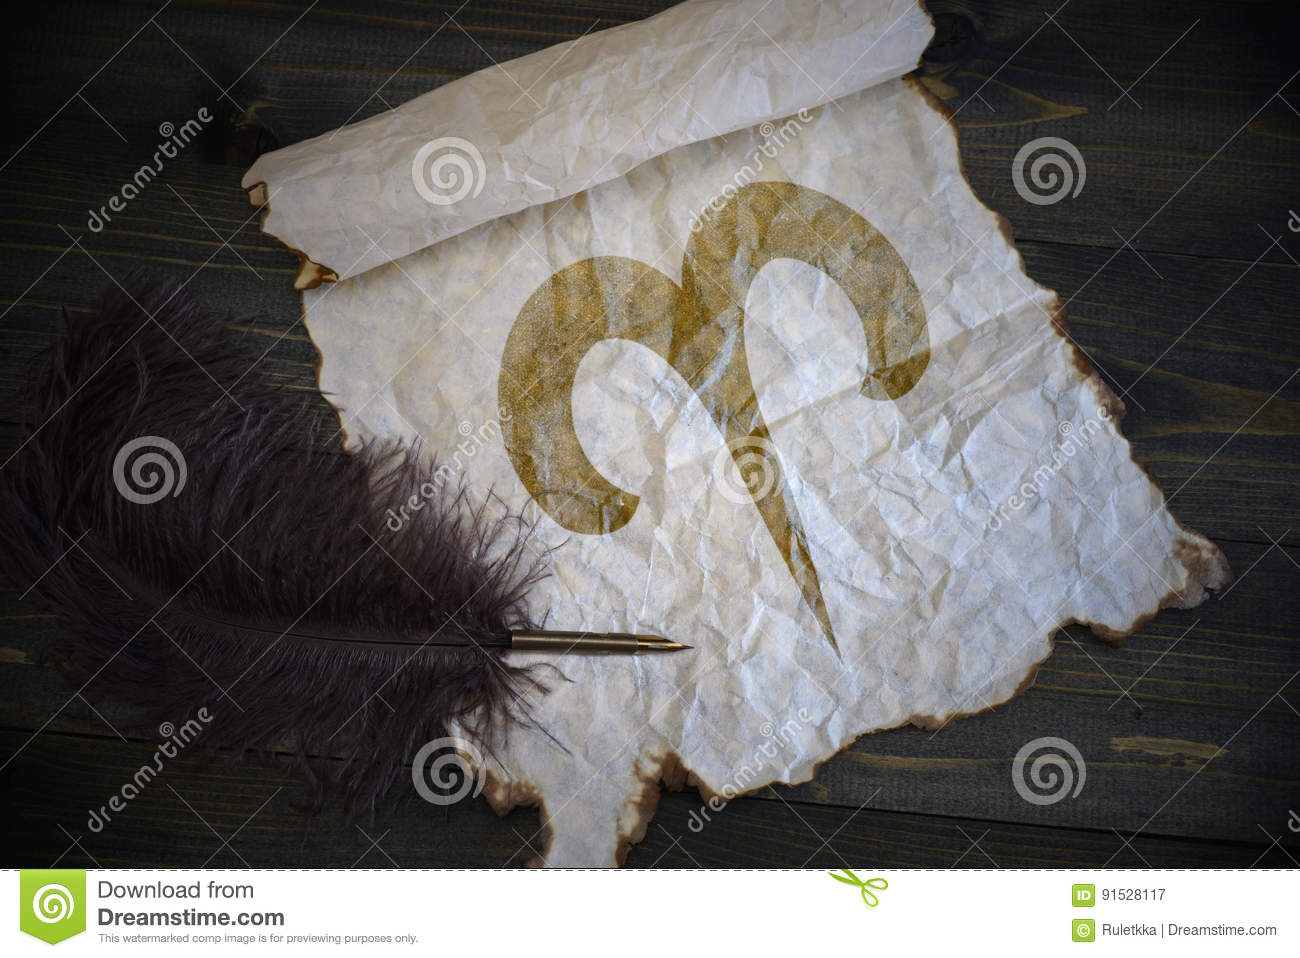 Aries sign of the zodiac on vintage paper with old pen on the wooden desk